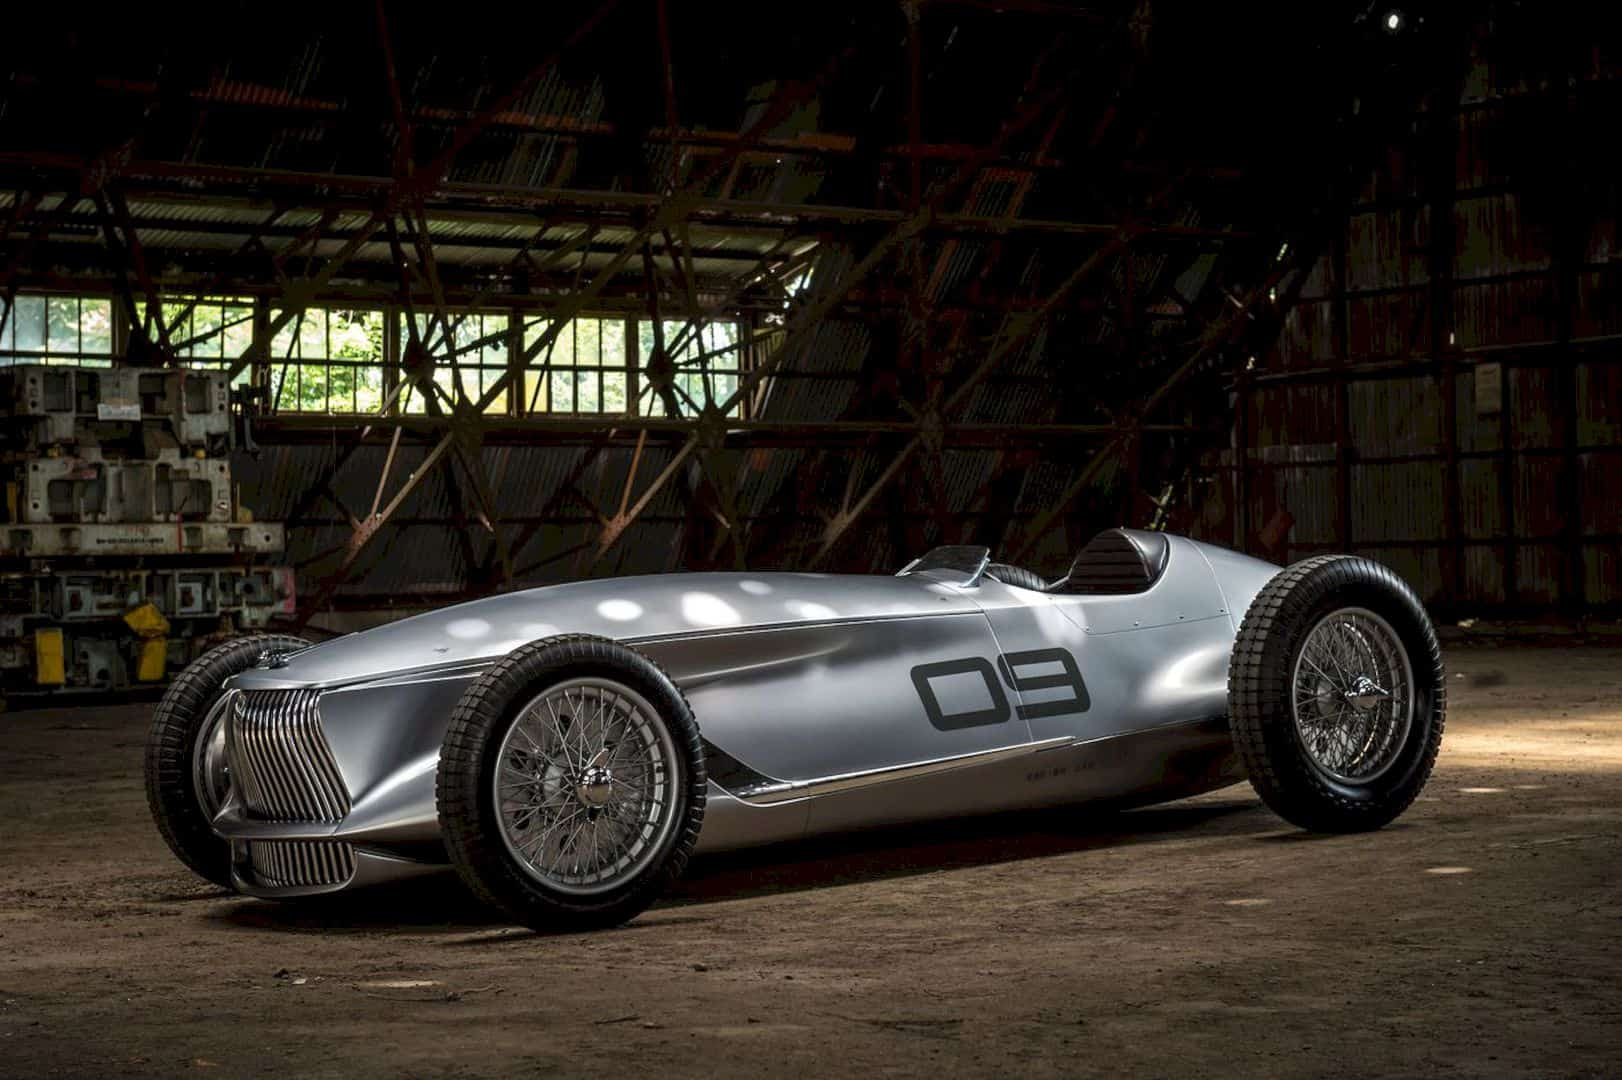 INFINITI Prototype 9 Concept: The Old New Perspective in Retro-Faced Electric Car